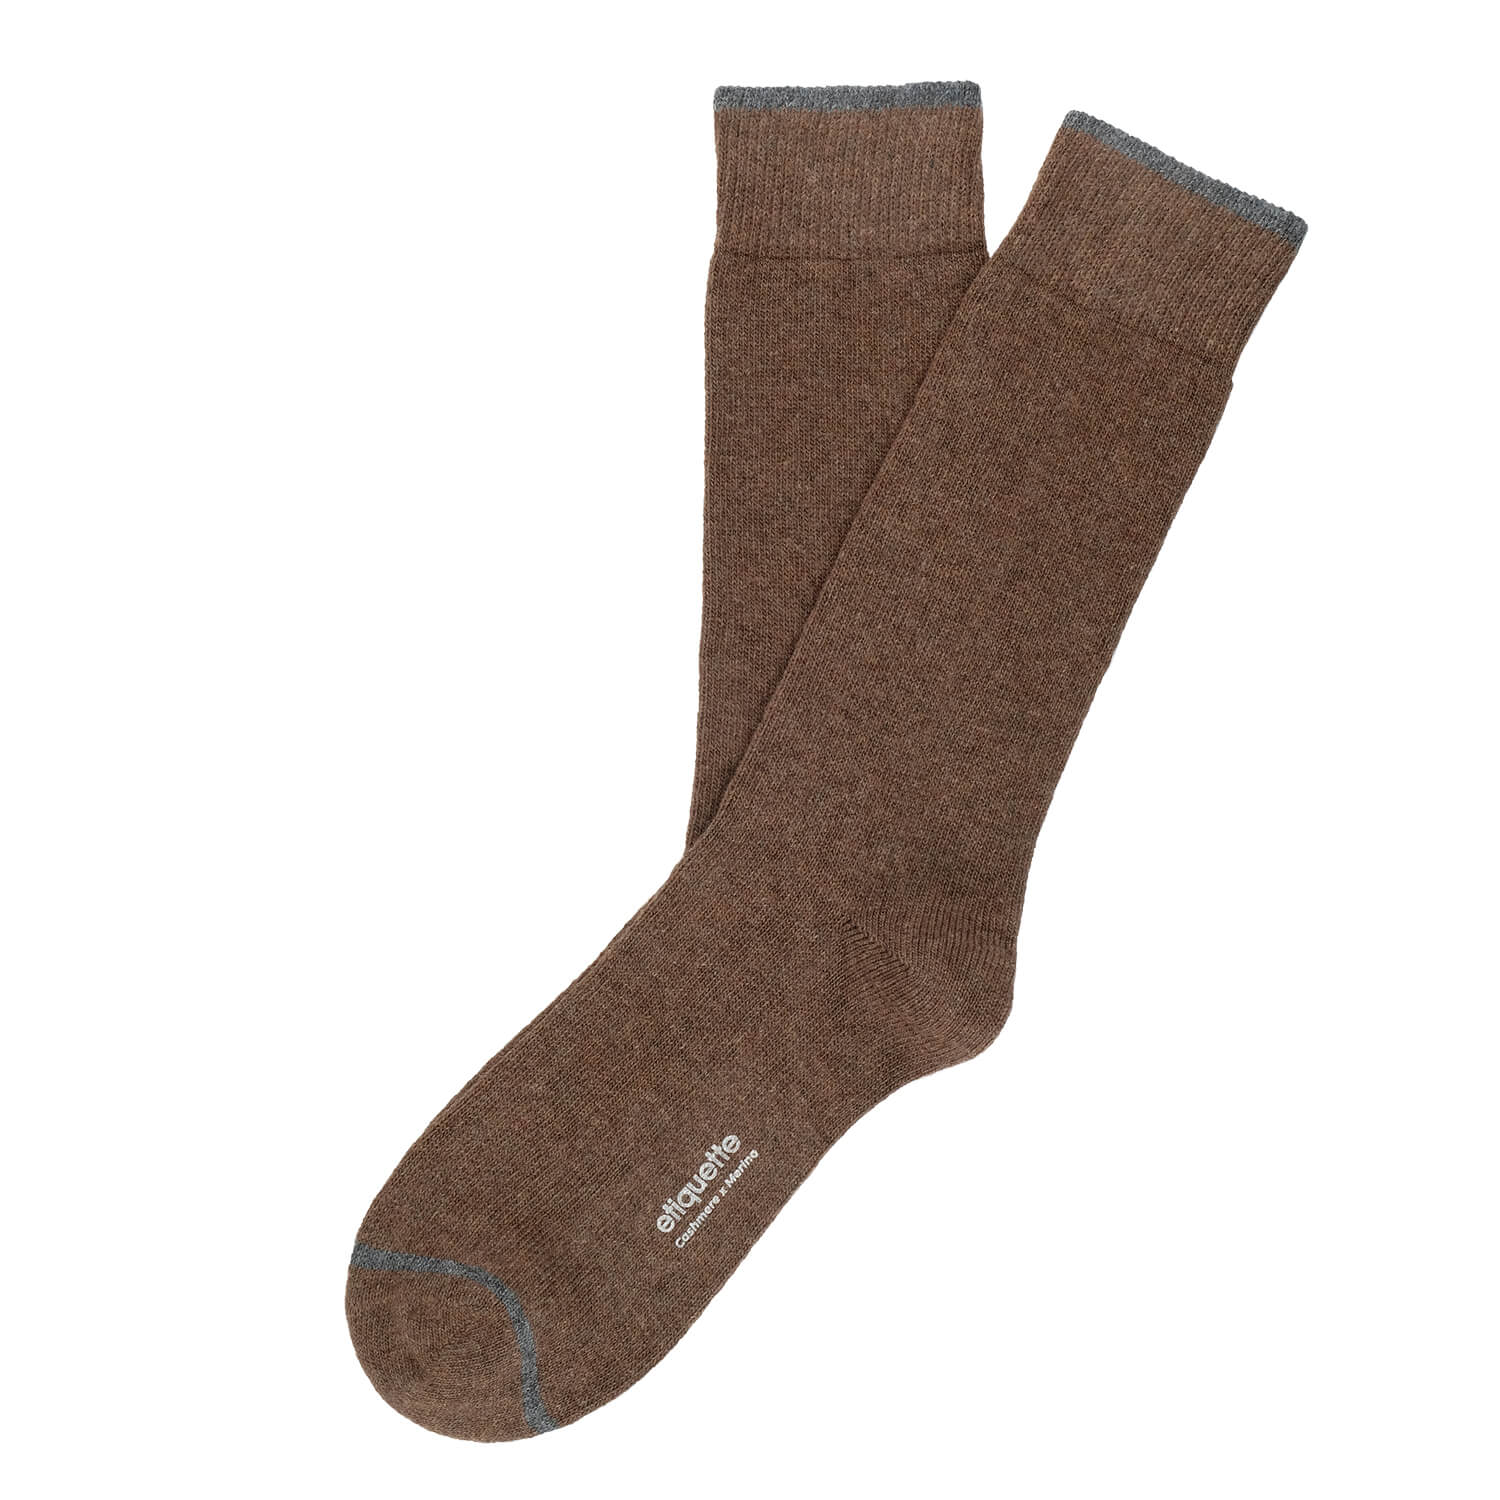 Mens Socks - Cashmere x Merino Men's Socks - Brown⎪Etiquette Clothiers